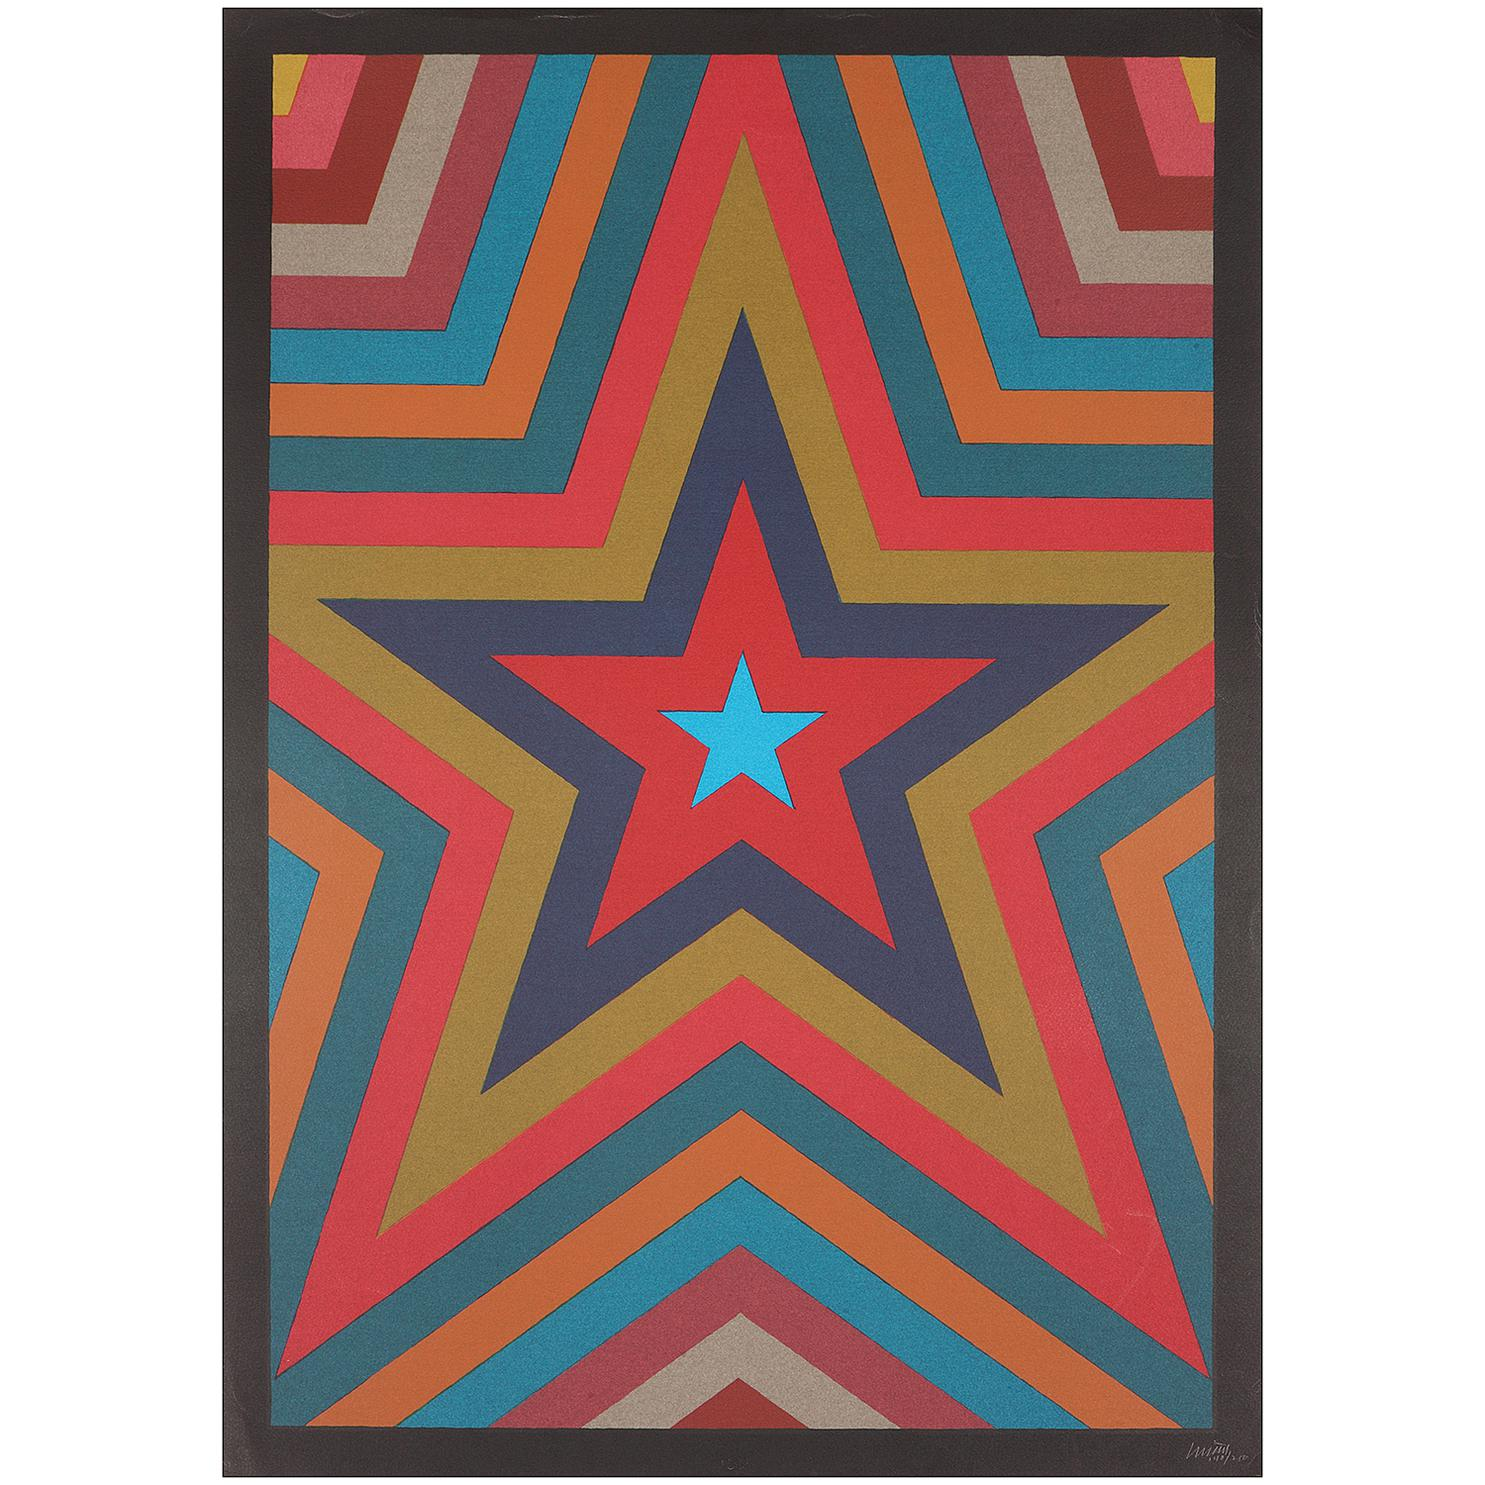 Sol LeWitt-Five Pointed Star With Colorbands-1992